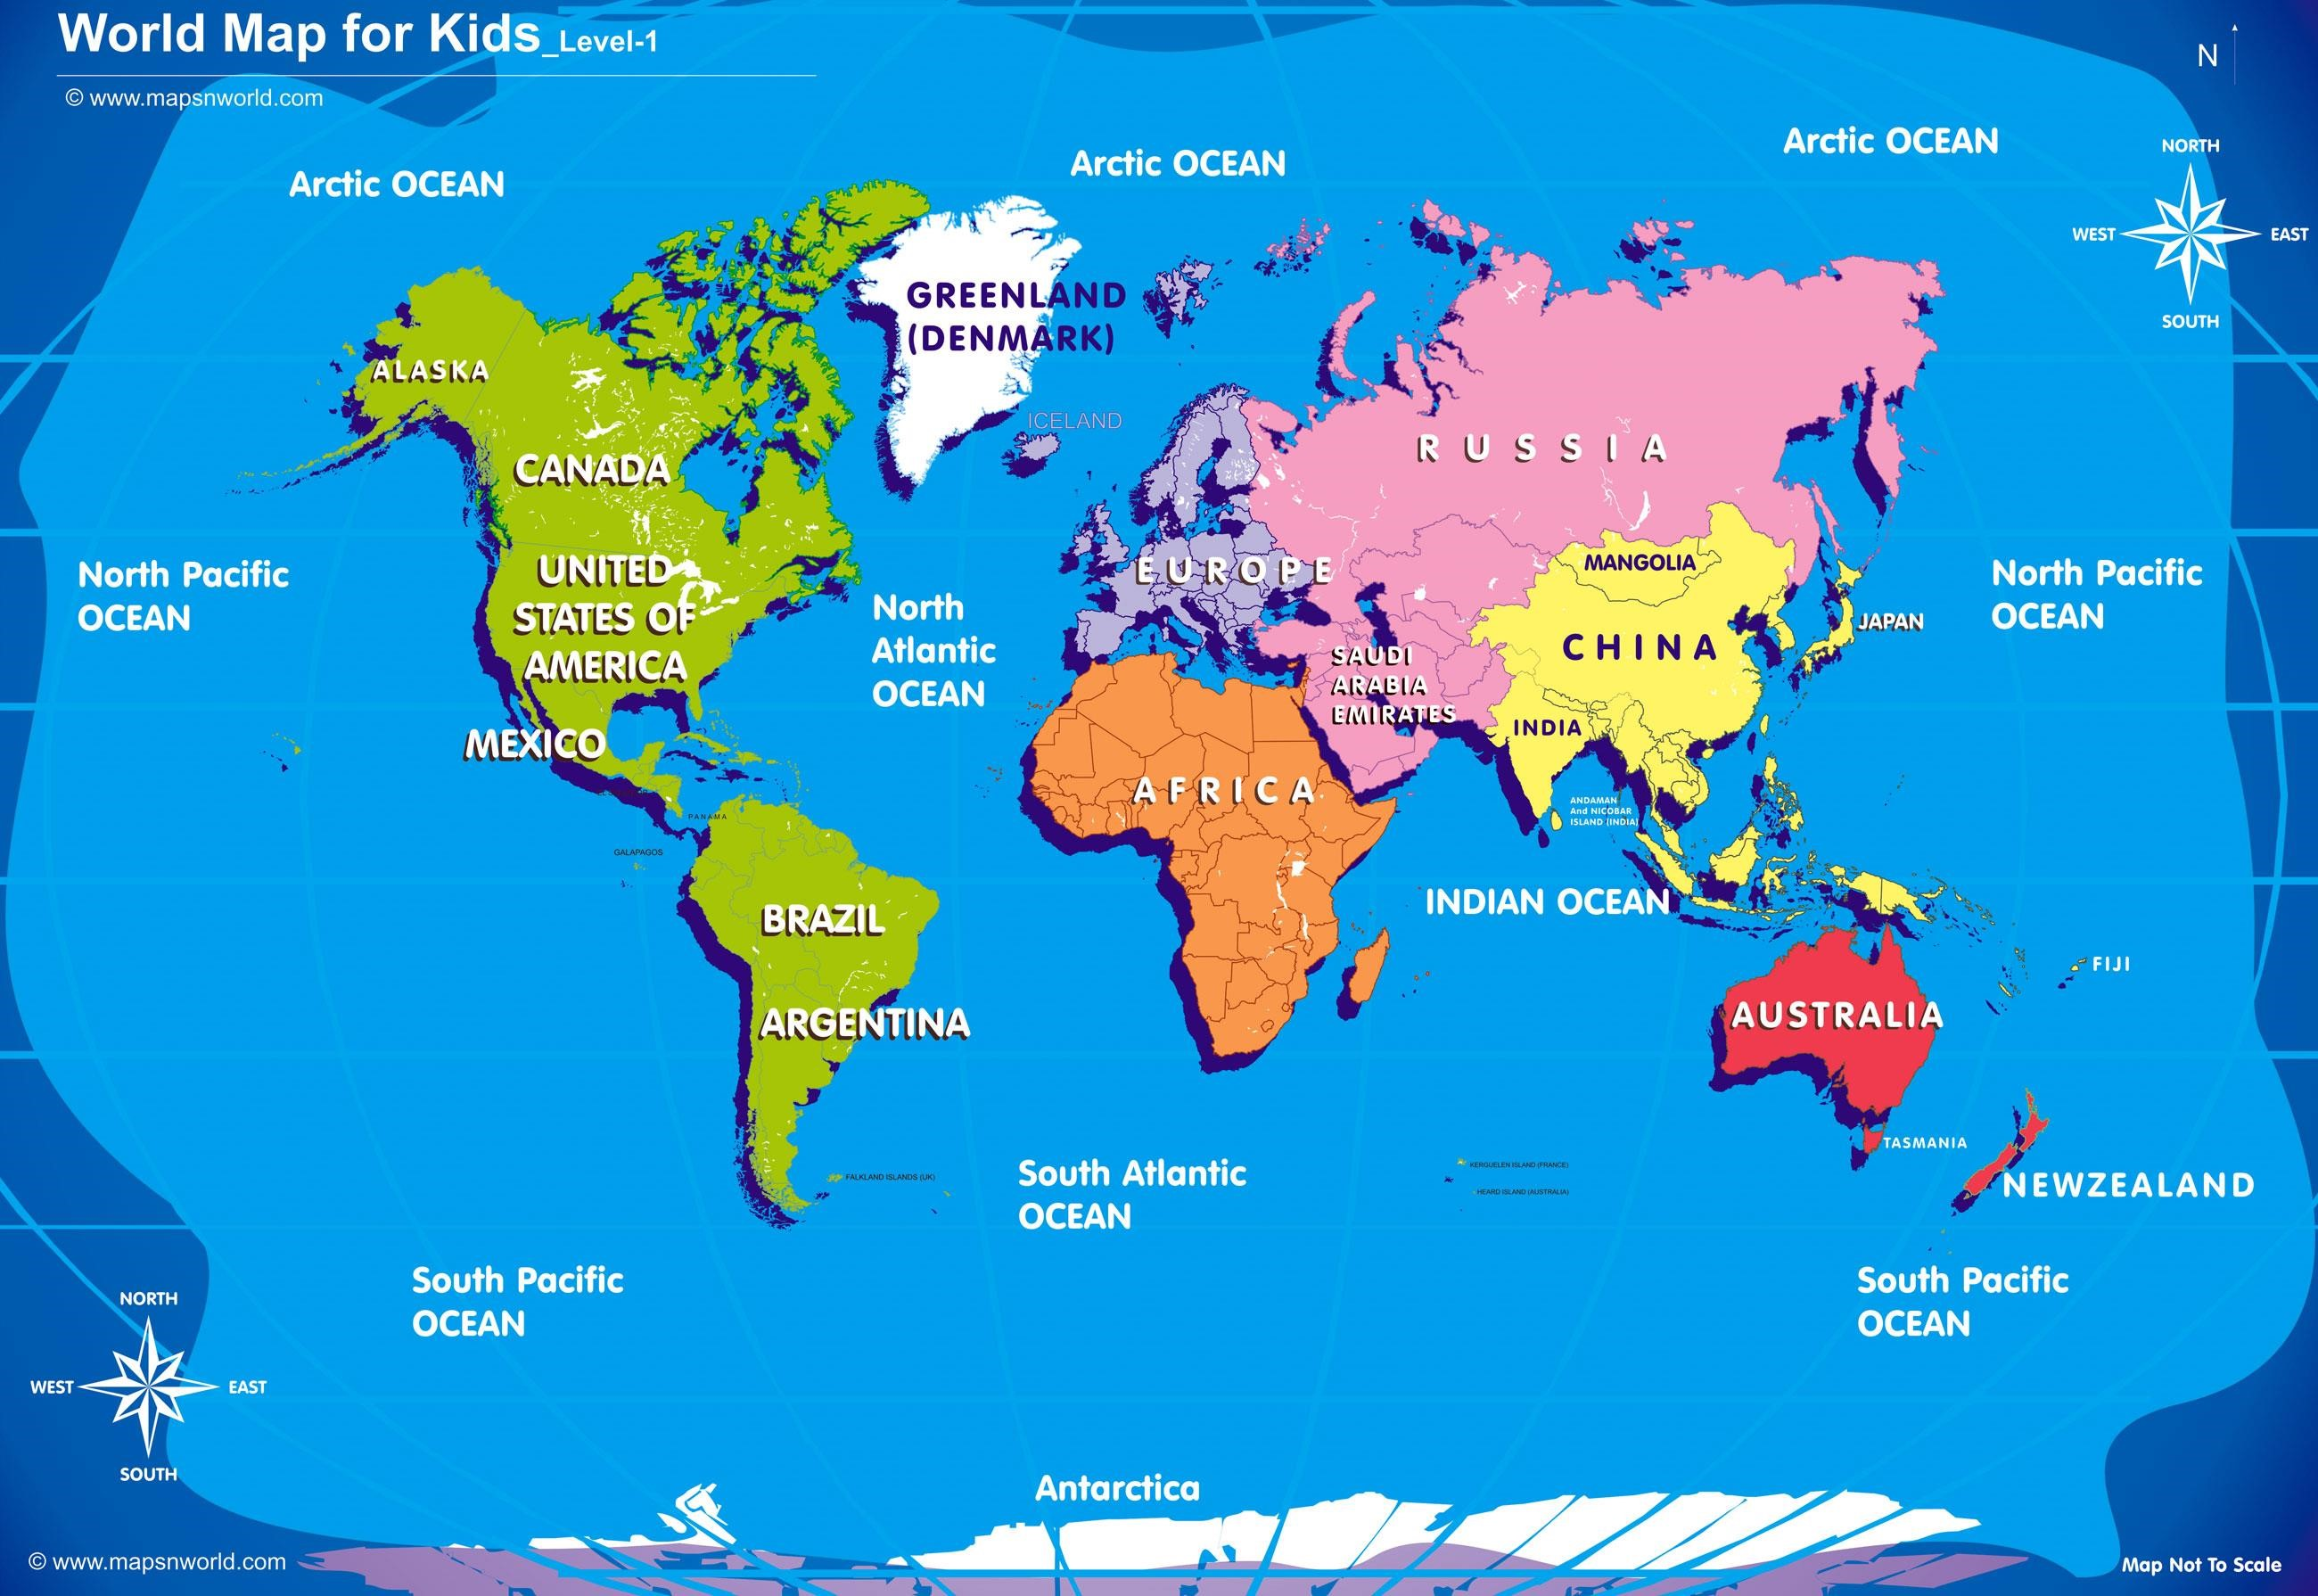 World map for kids big size w r ibackgroundzcomg map pictures world map for kids big size w r ibackgroundzcomg sciox Images